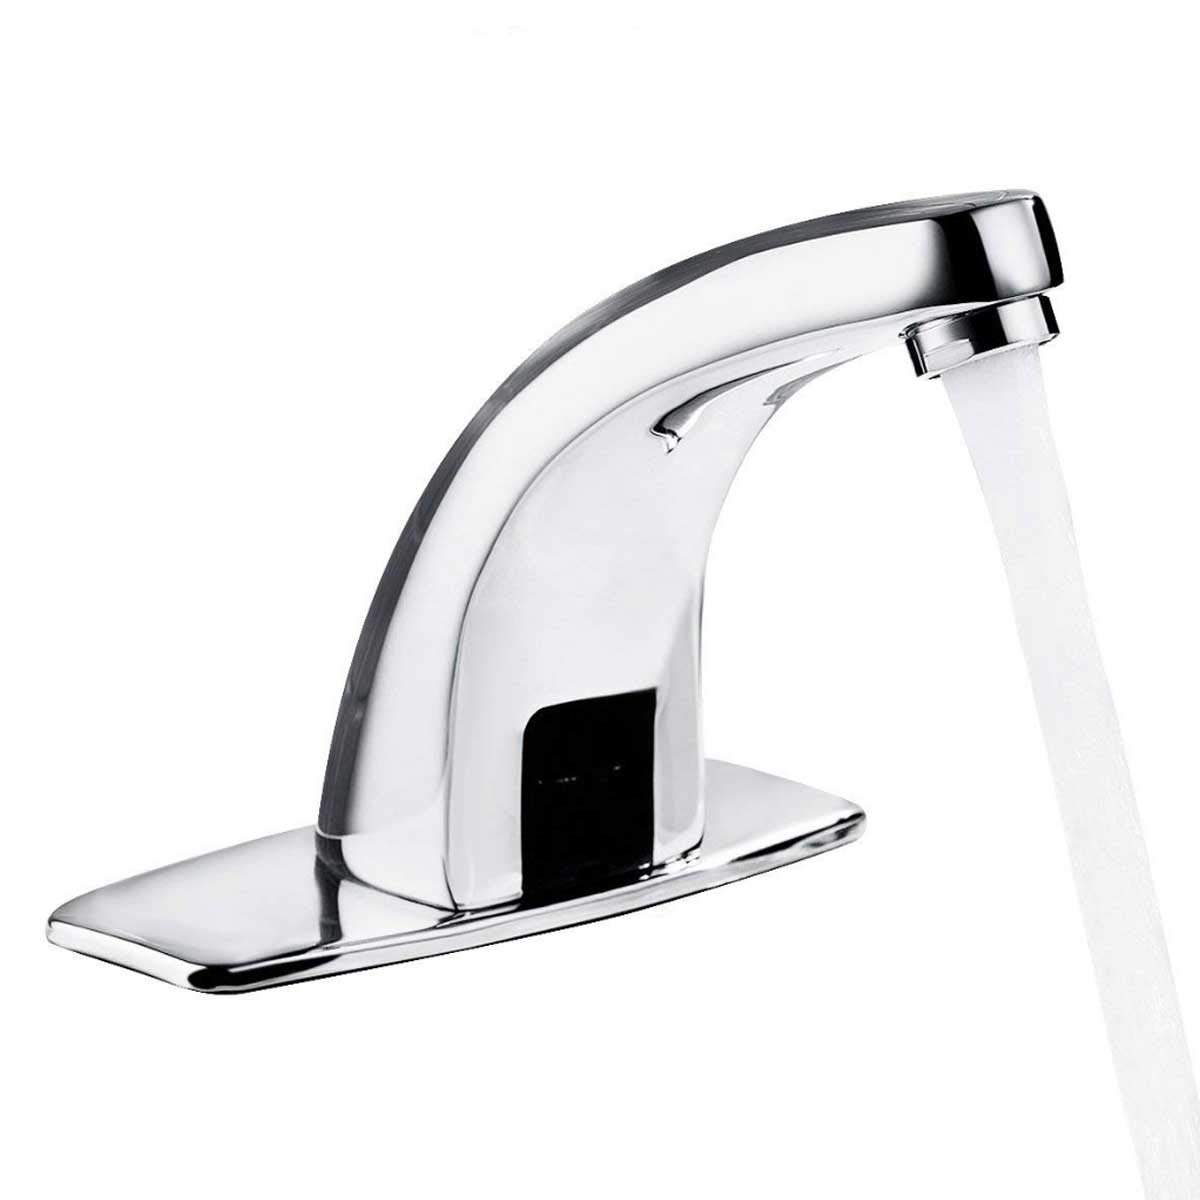 Yosoo Automatic Infrared Sensor Faucet, Zinc Alloy Smart Touchless Sink Faucet Kitchen Bathroom Water Tap (Type of 1) by Yosoo